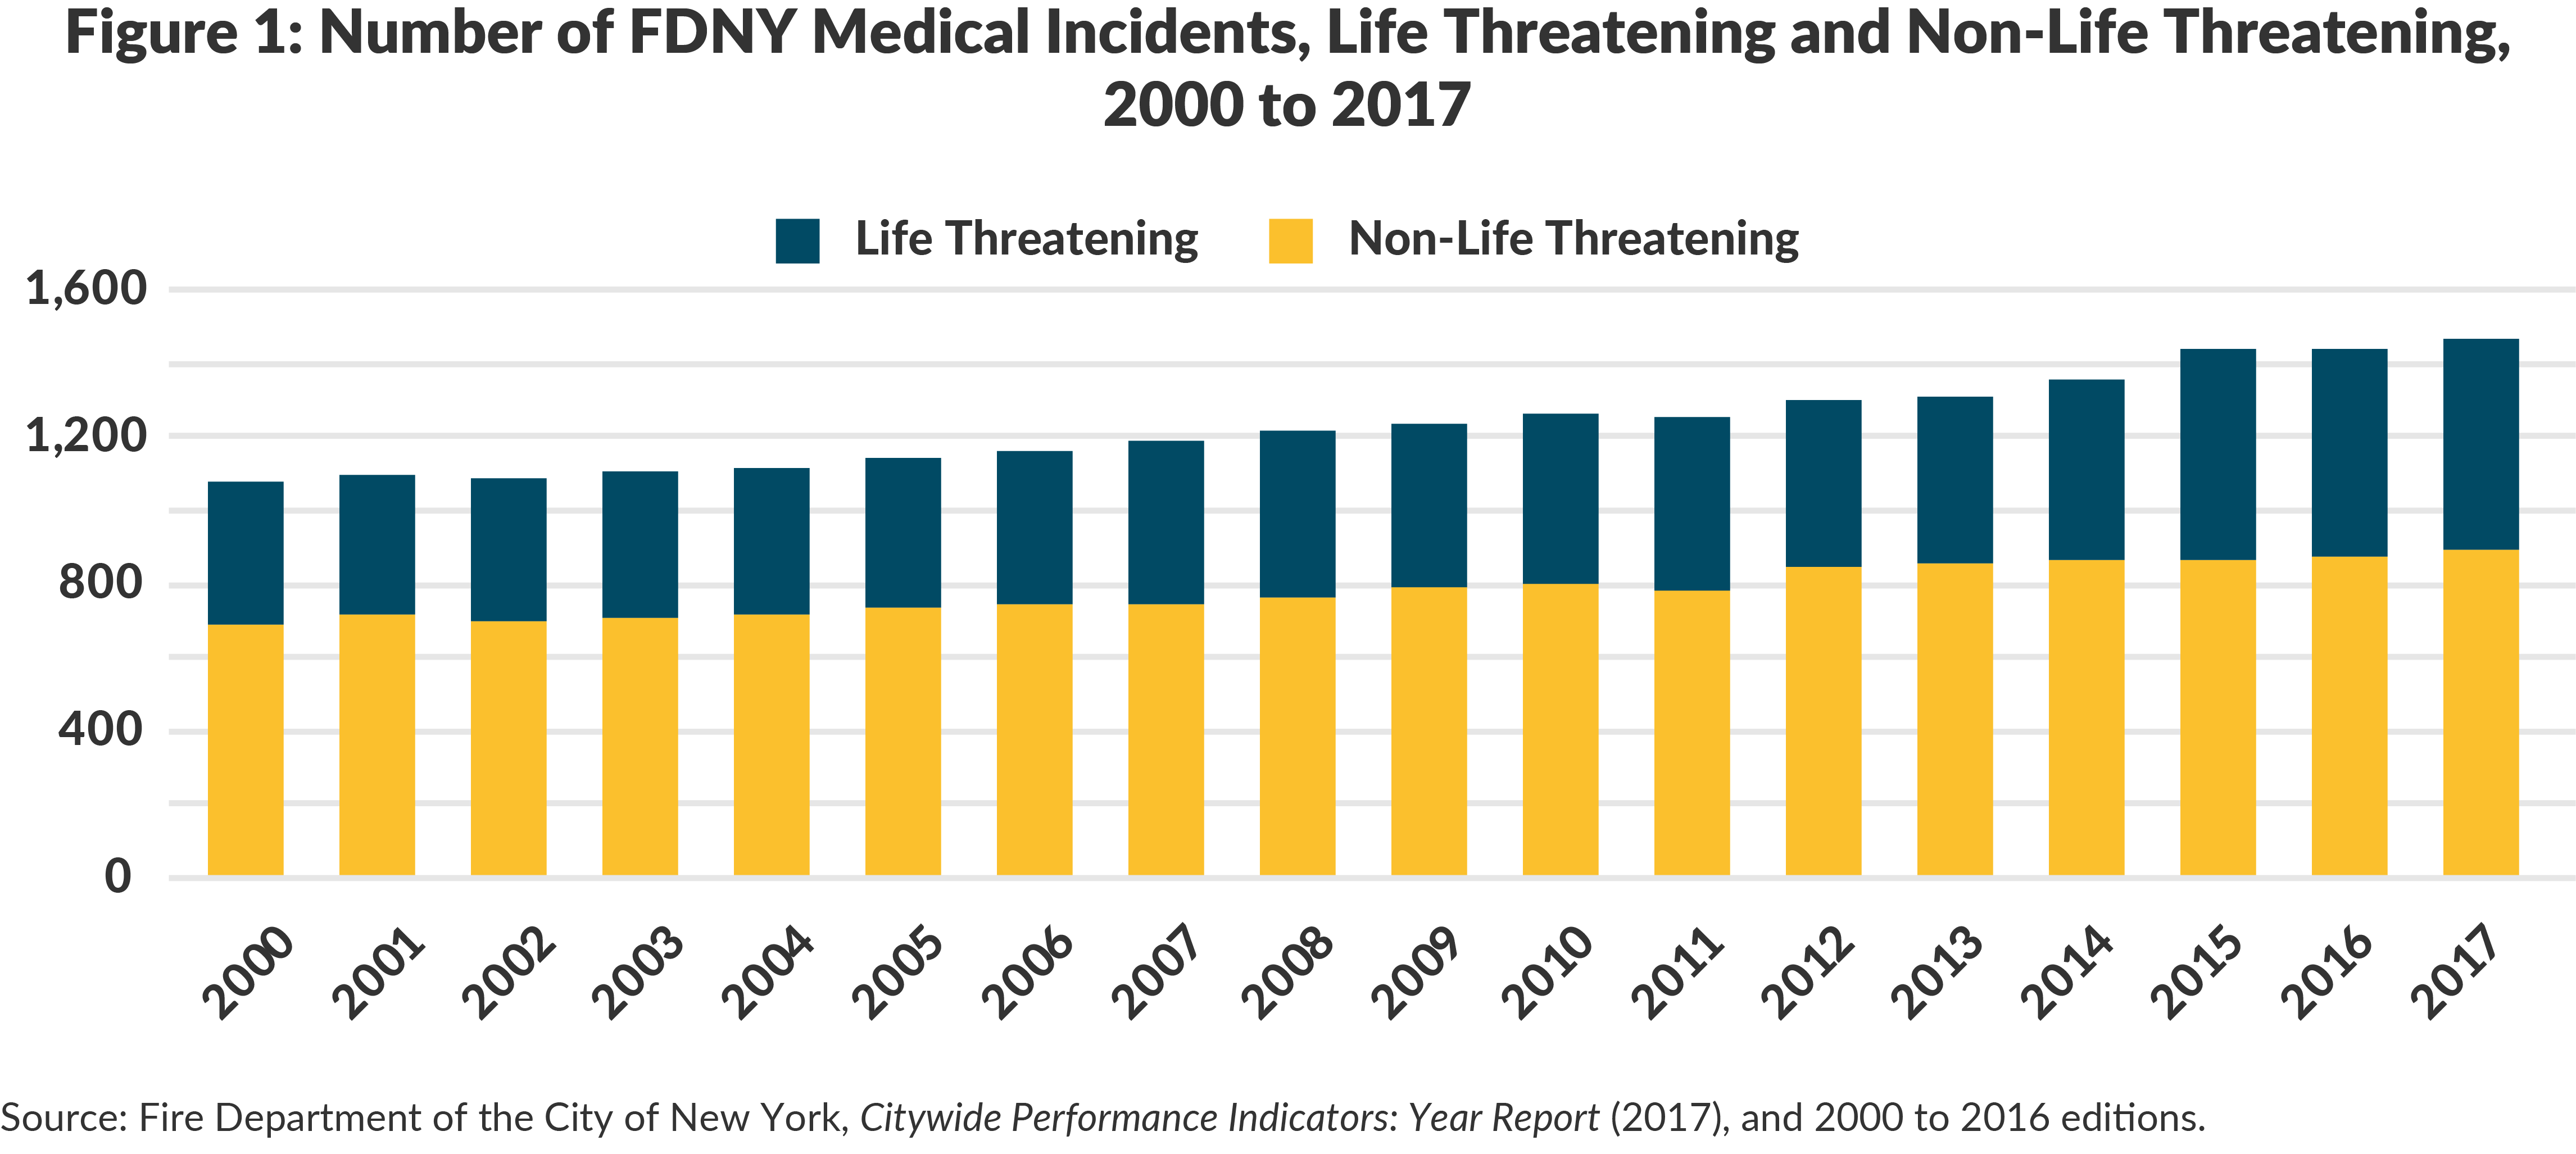 Figure 1: Number of FDNY Medical Incidents, Life Threatening and Non-Life Threatening, 2000 to 2017